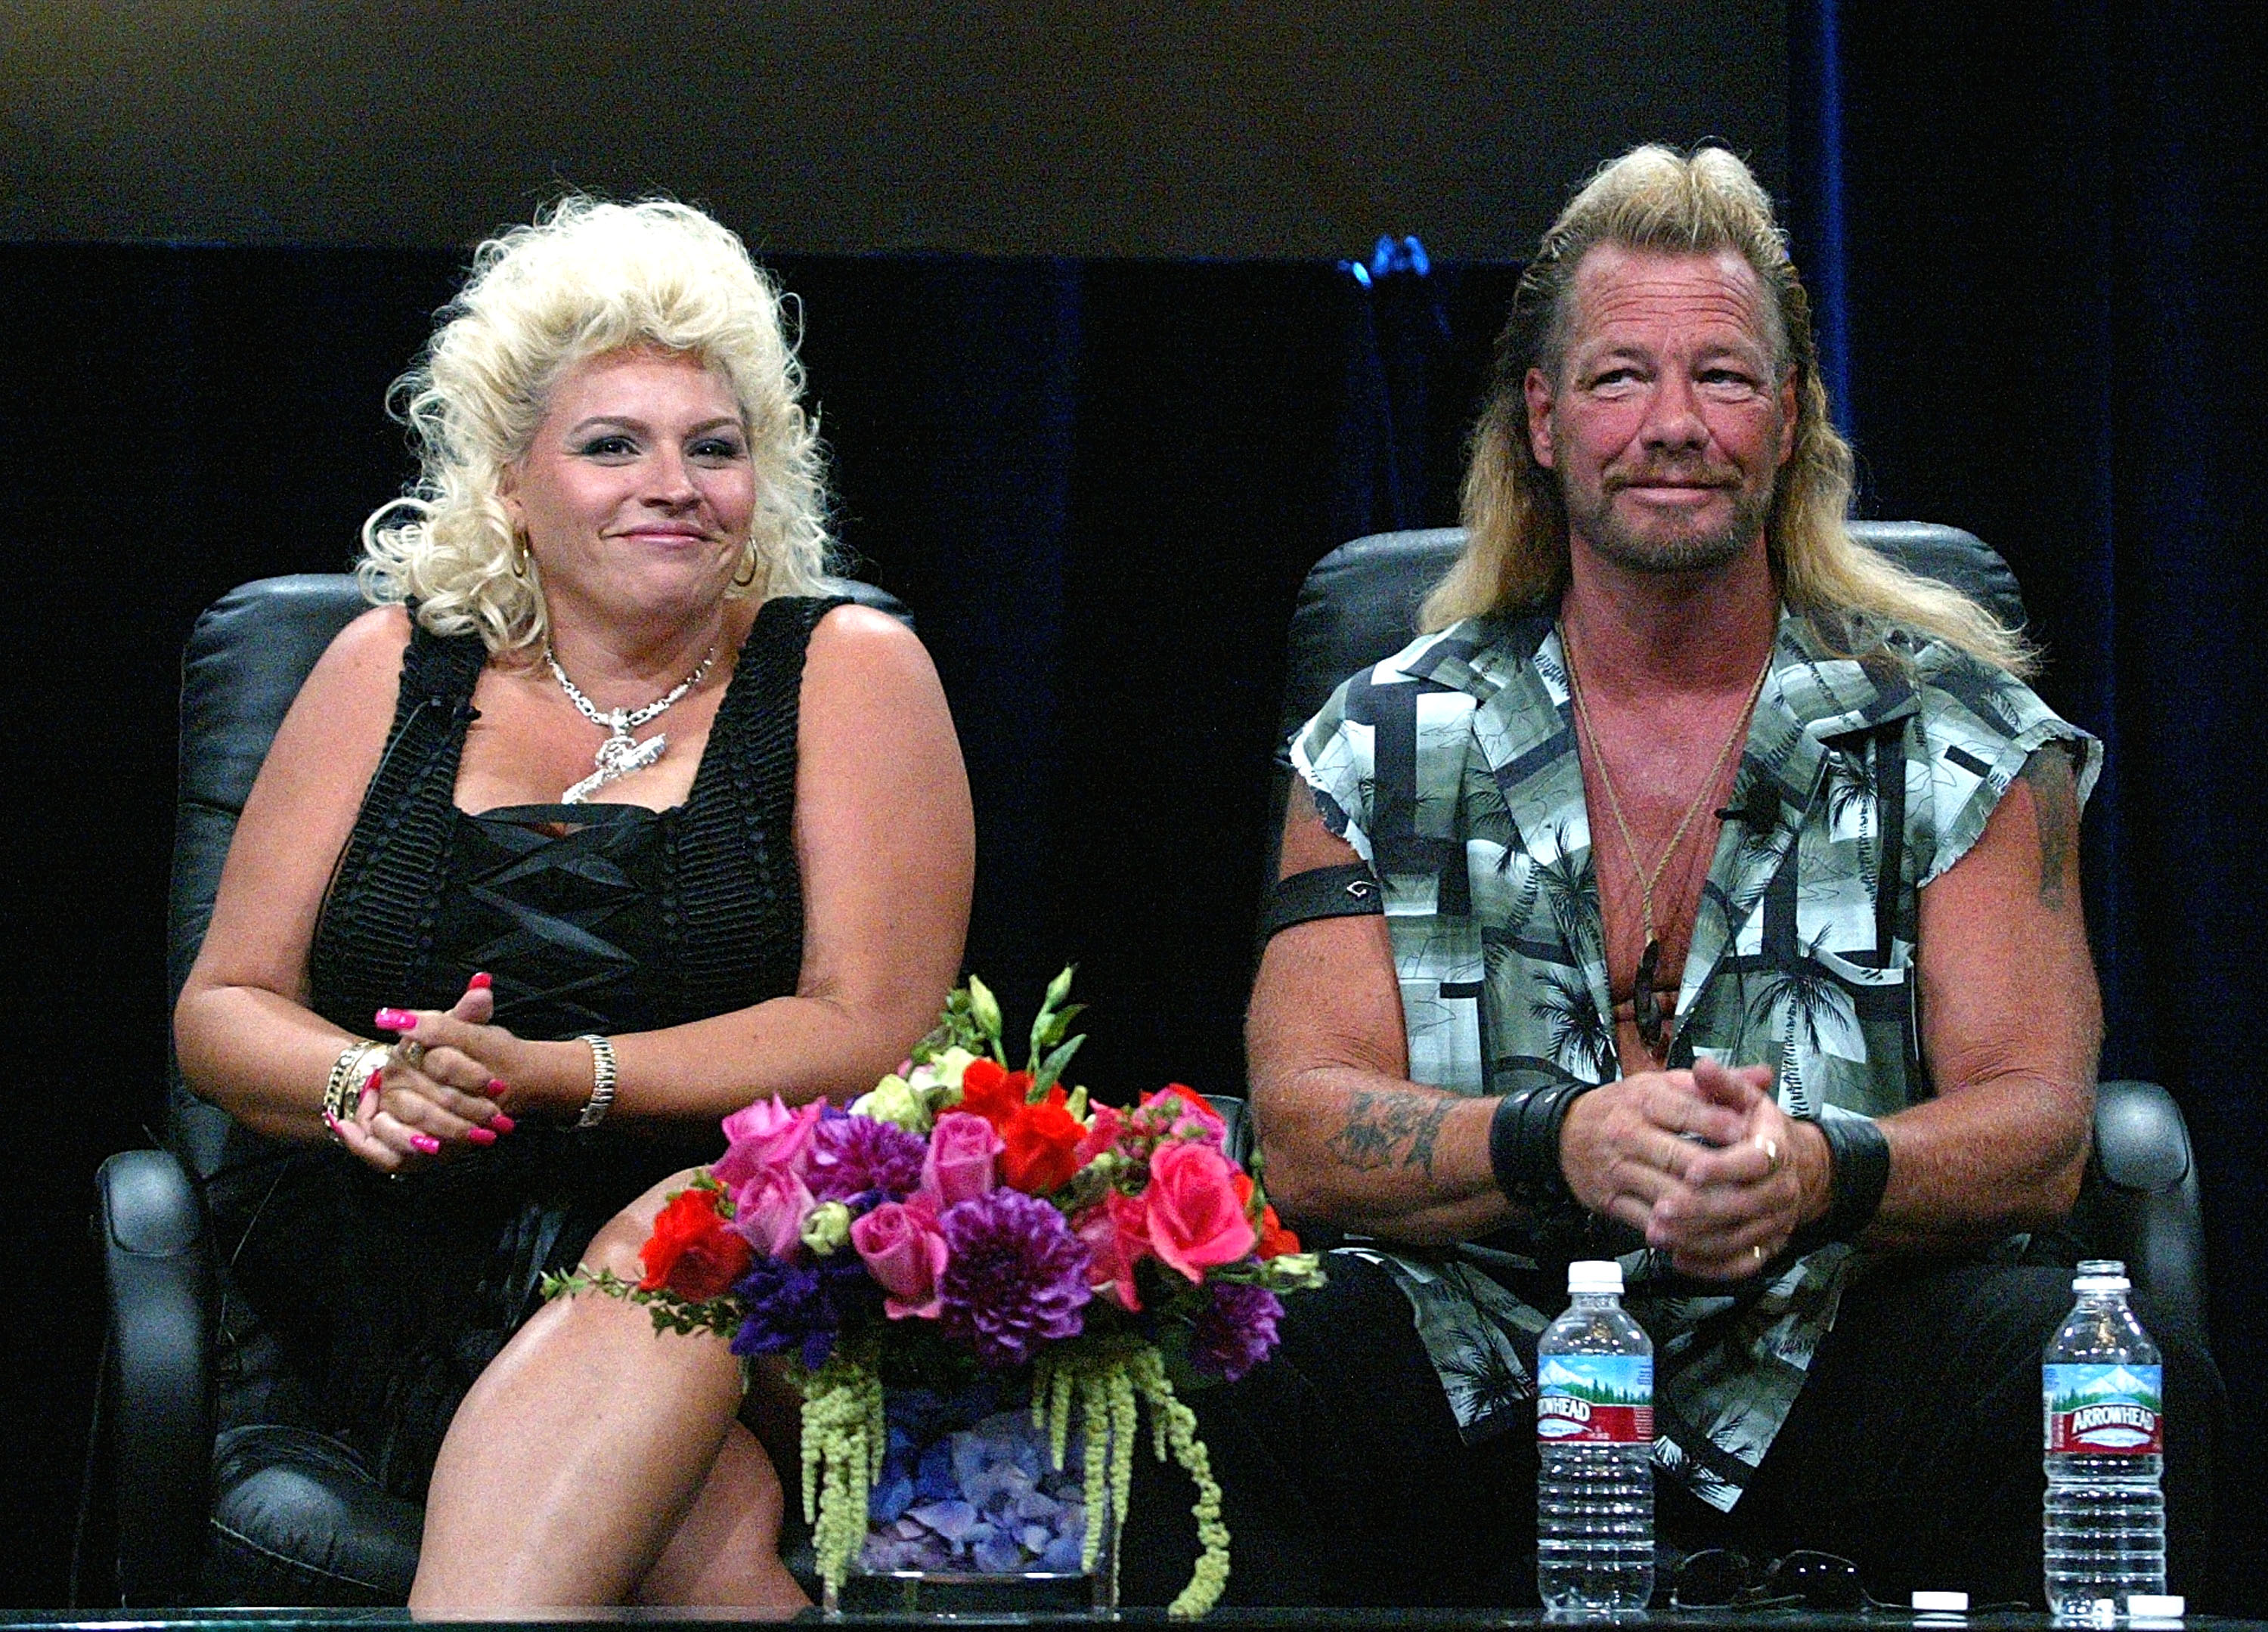 Beth Chapman in coma; Dog the Bounty Hunter asks fans for prayers